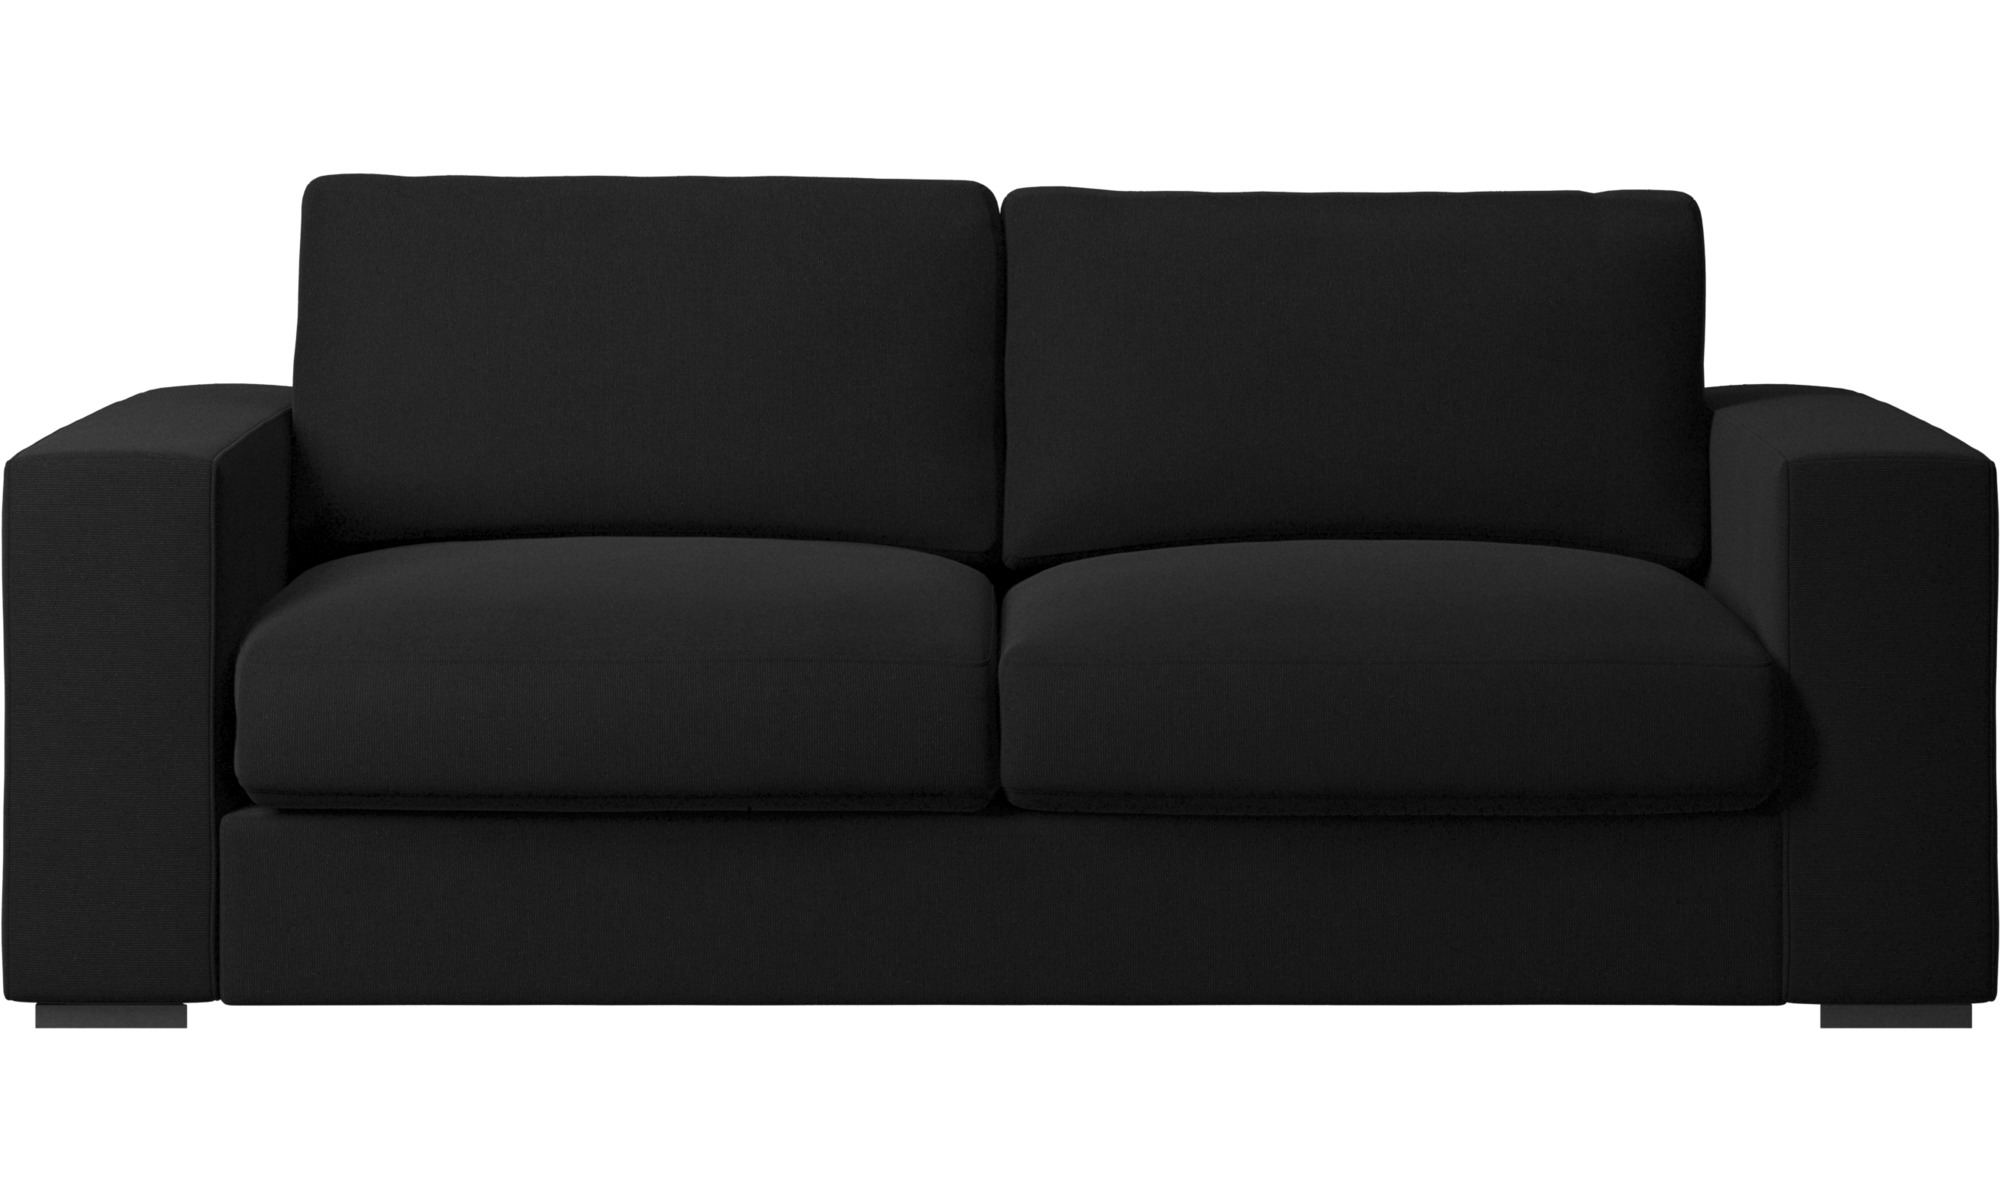 2 5 seater sofas cenova sofa boconcept. Black Bedroom Furniture Sets. Home Design Ideas